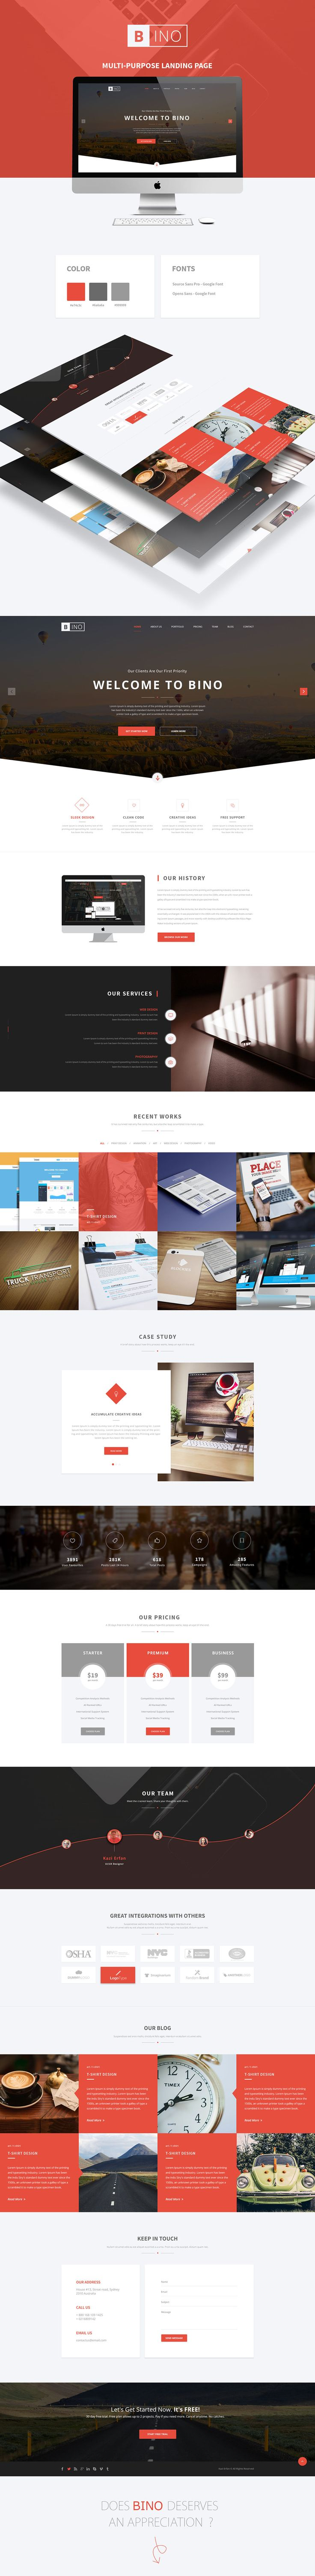 Freebie | Bino Landing Page PSD Template on Behance